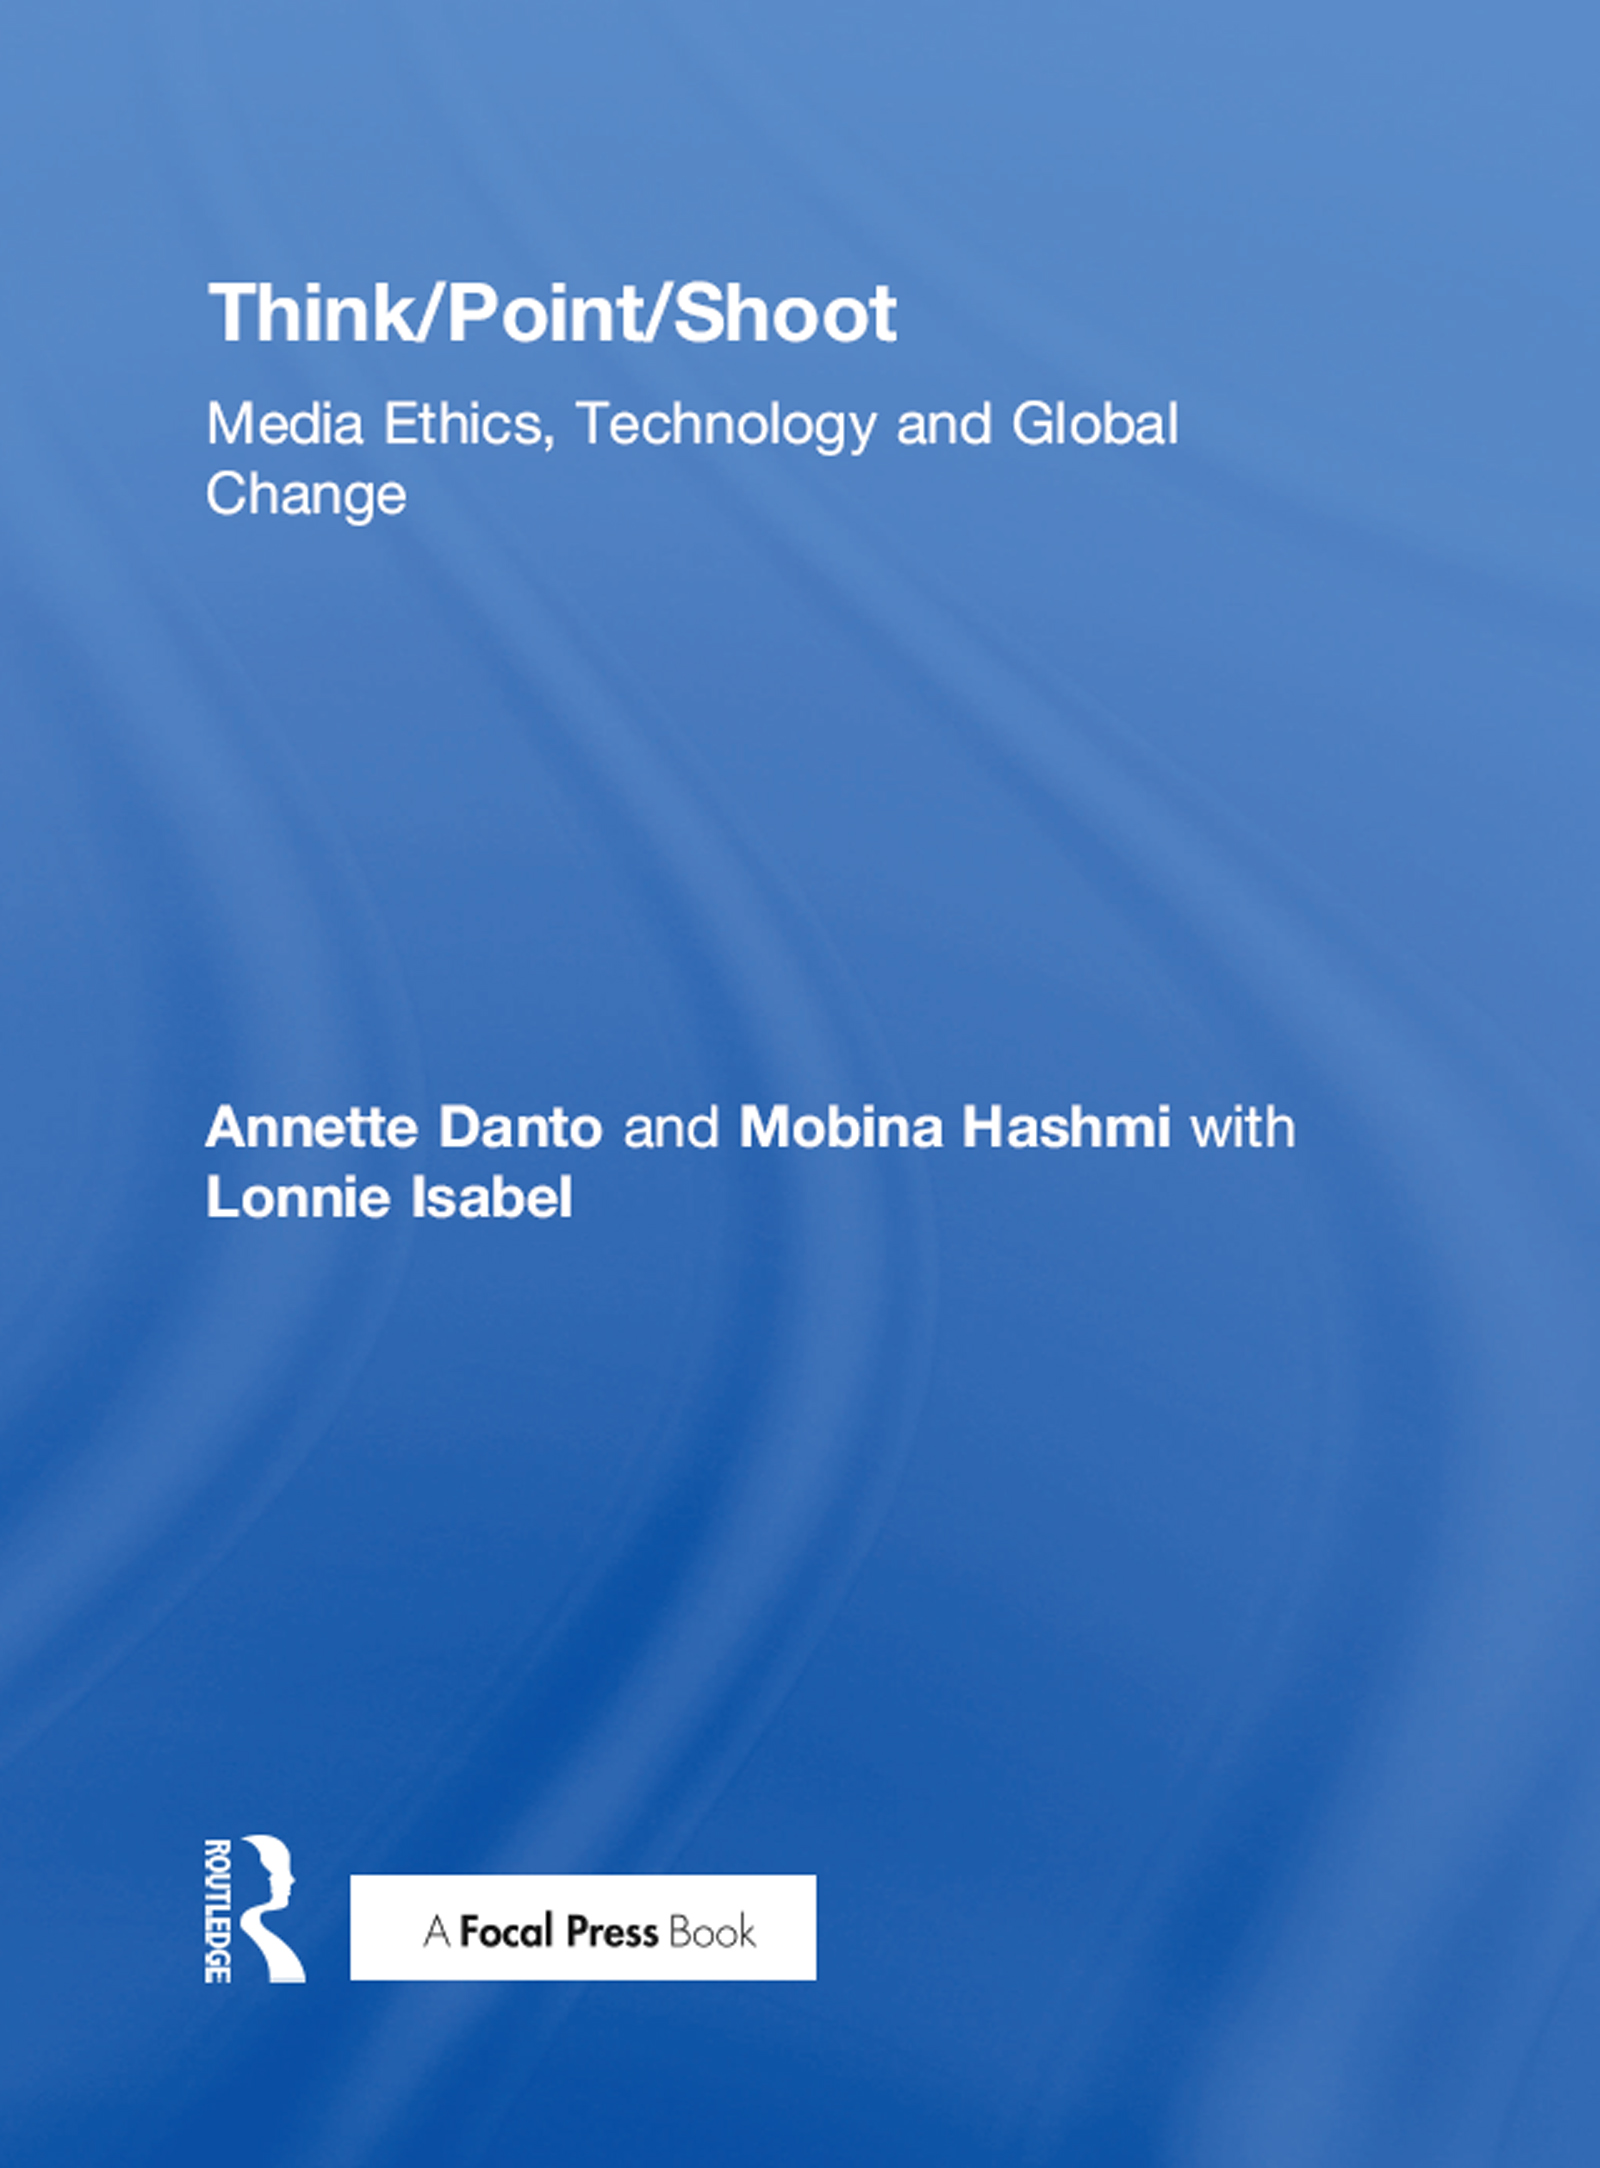 Think/Point/Shoot: Media Ethics, Technology and Global Change book cover